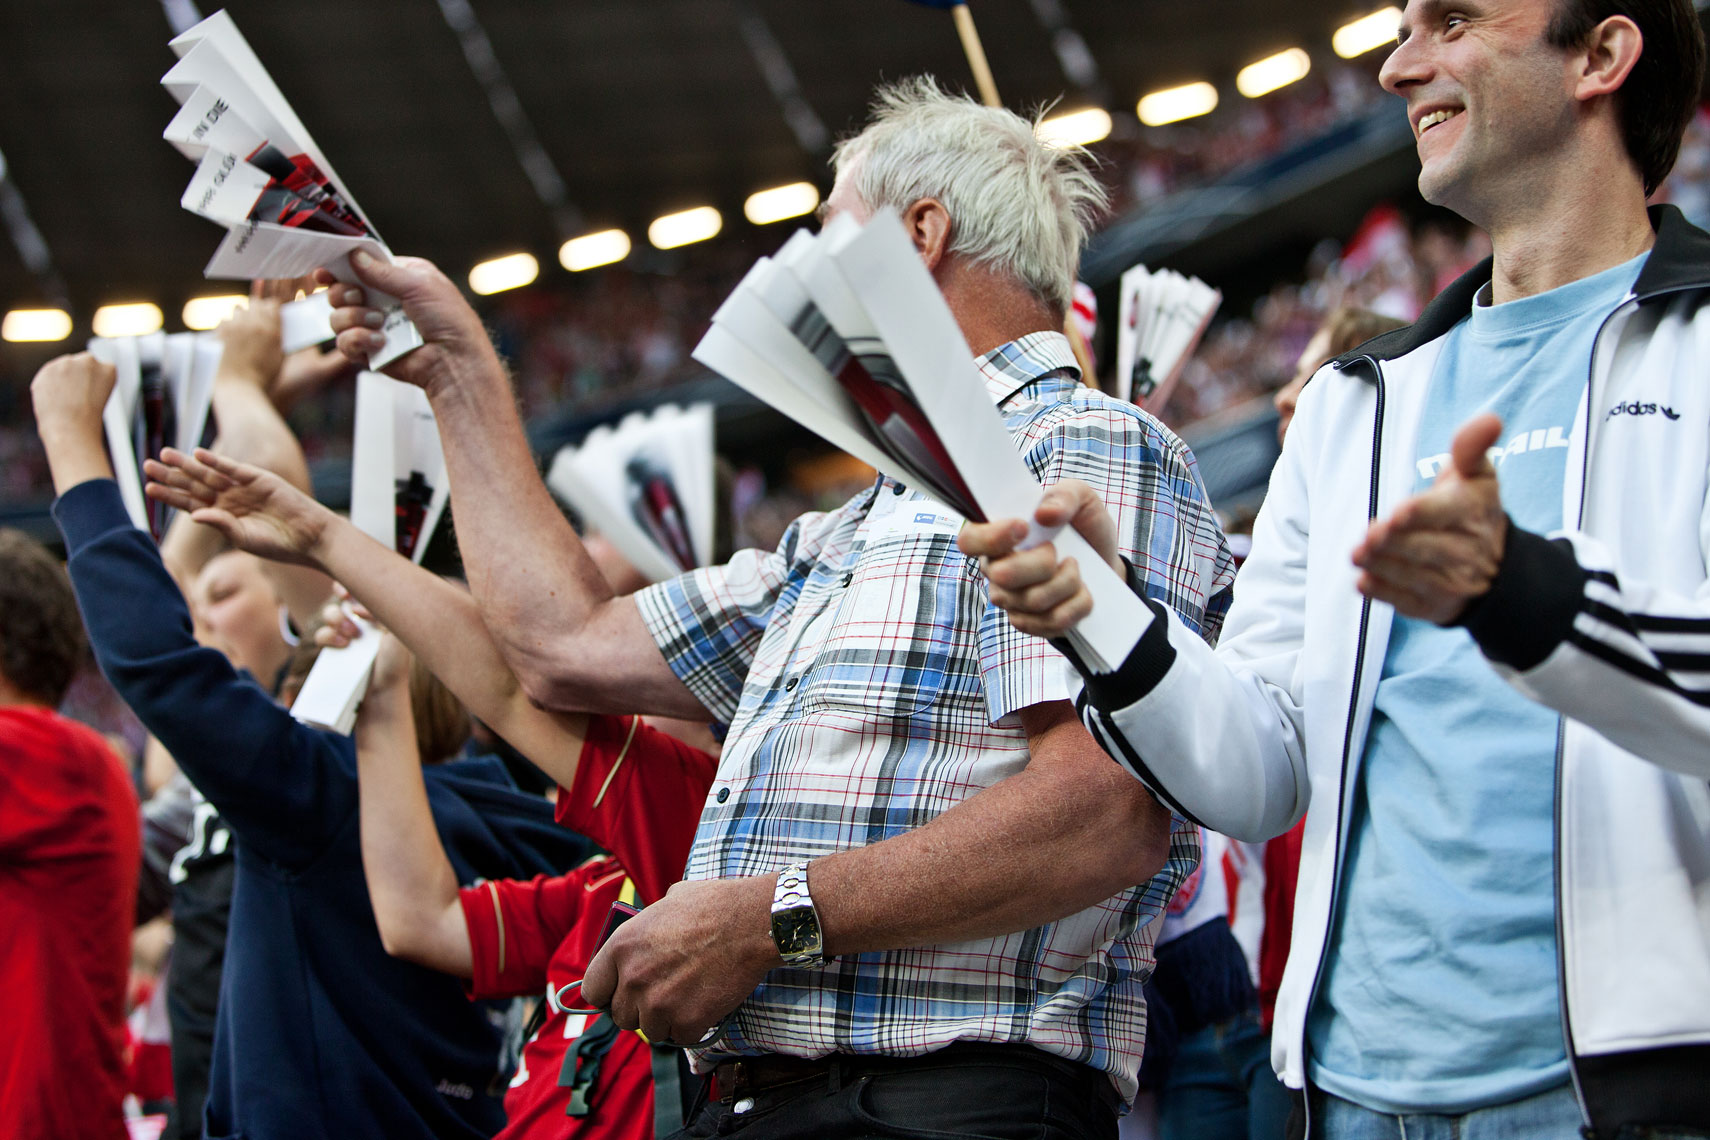 Fiat_Supercup_Allianz_Arena_05